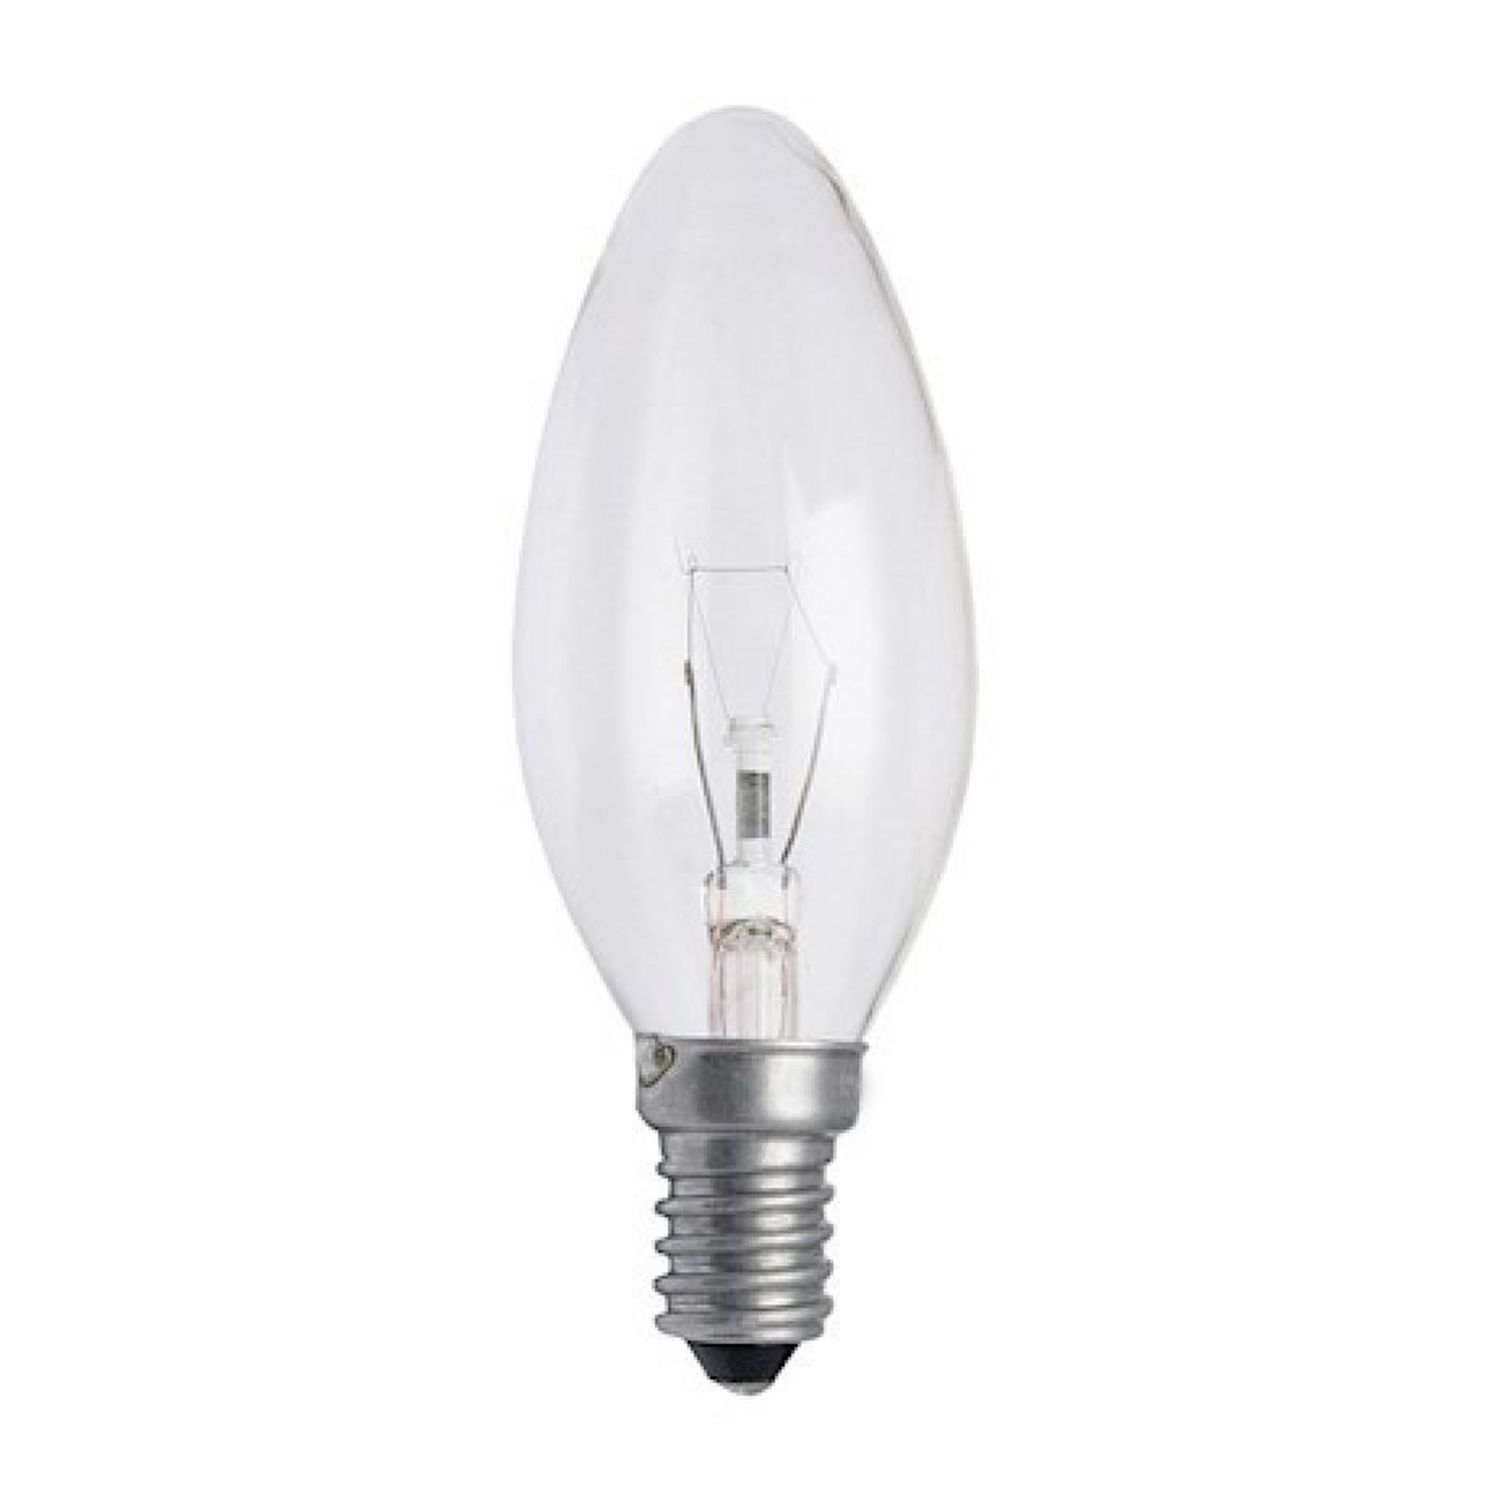 Standard Incandescent Candle Clear B35 E14 25W 230V